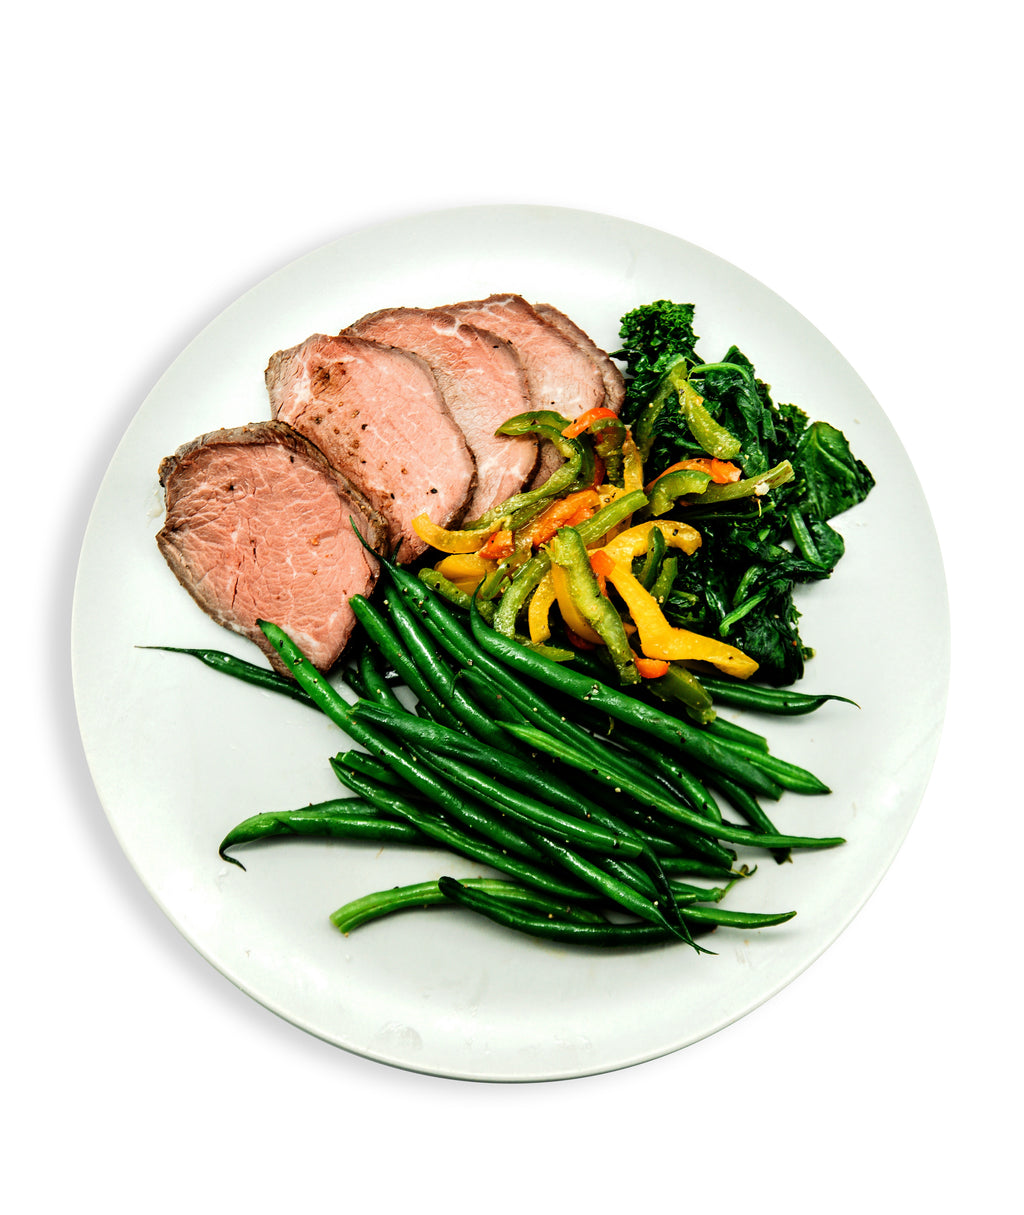 Sirloin Steak with Seasonal Mixed Vegetables